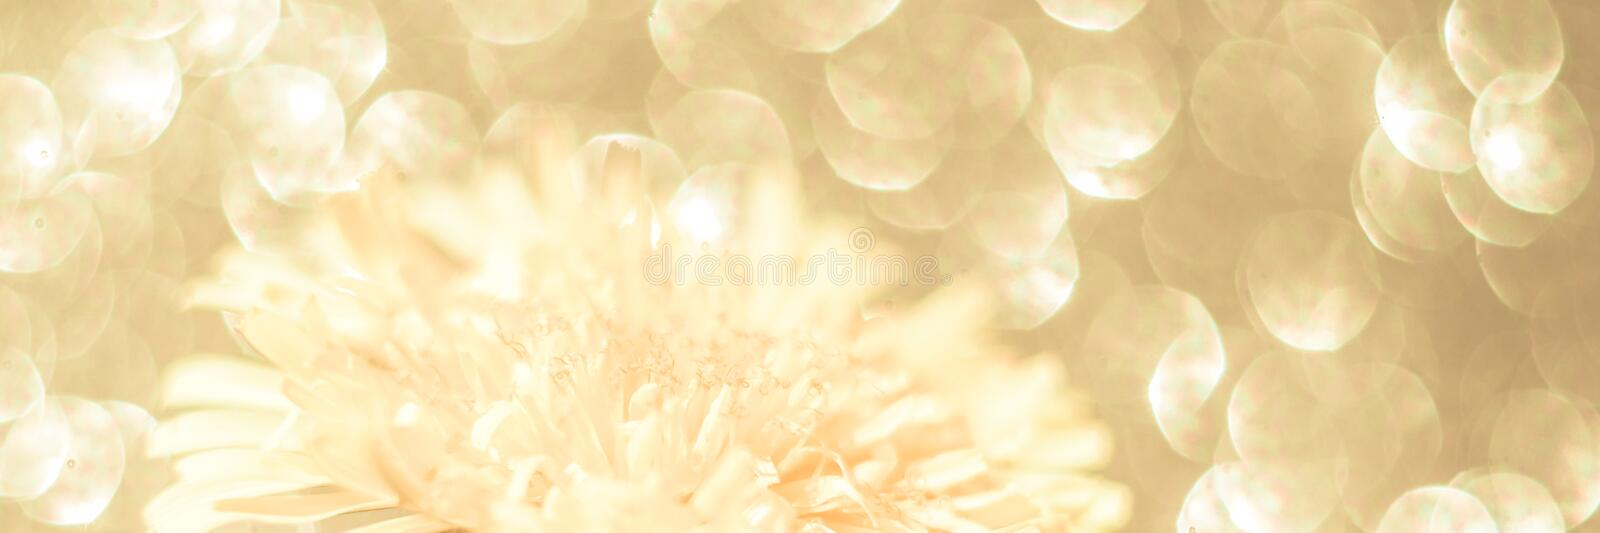 Defocused natural golden delicate floral background on a sunny day. concept of luxury, natural beauty, youth radiance stock image